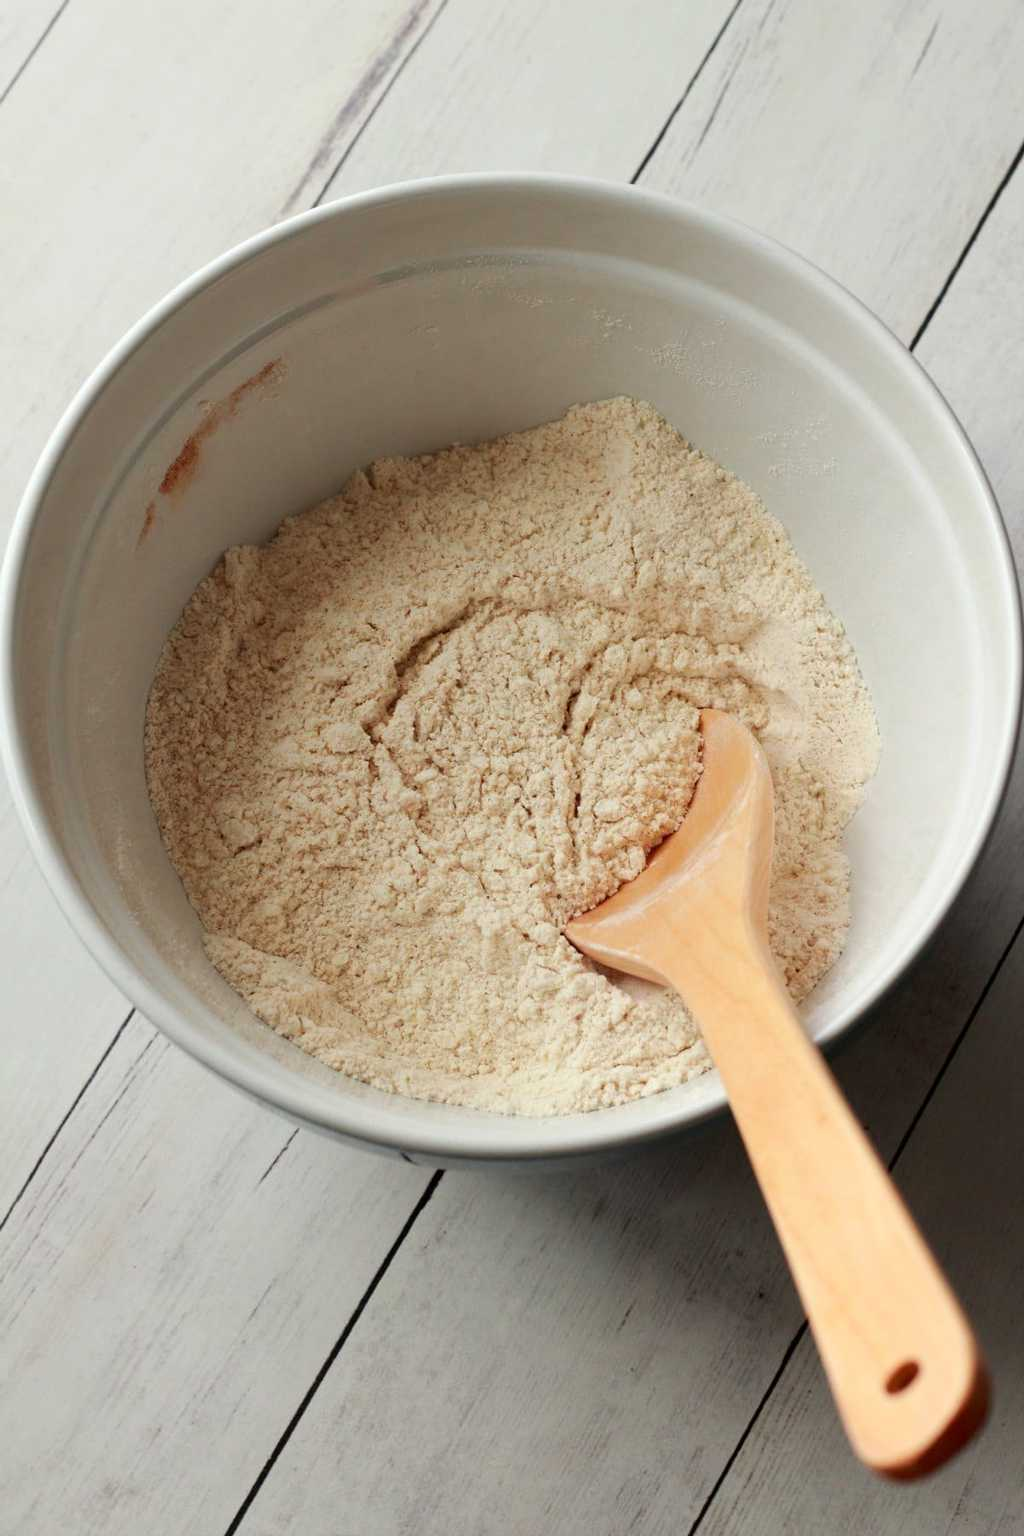 Flour, sugar and other dry ingredients in a mixing bowl with a wooden spoon.